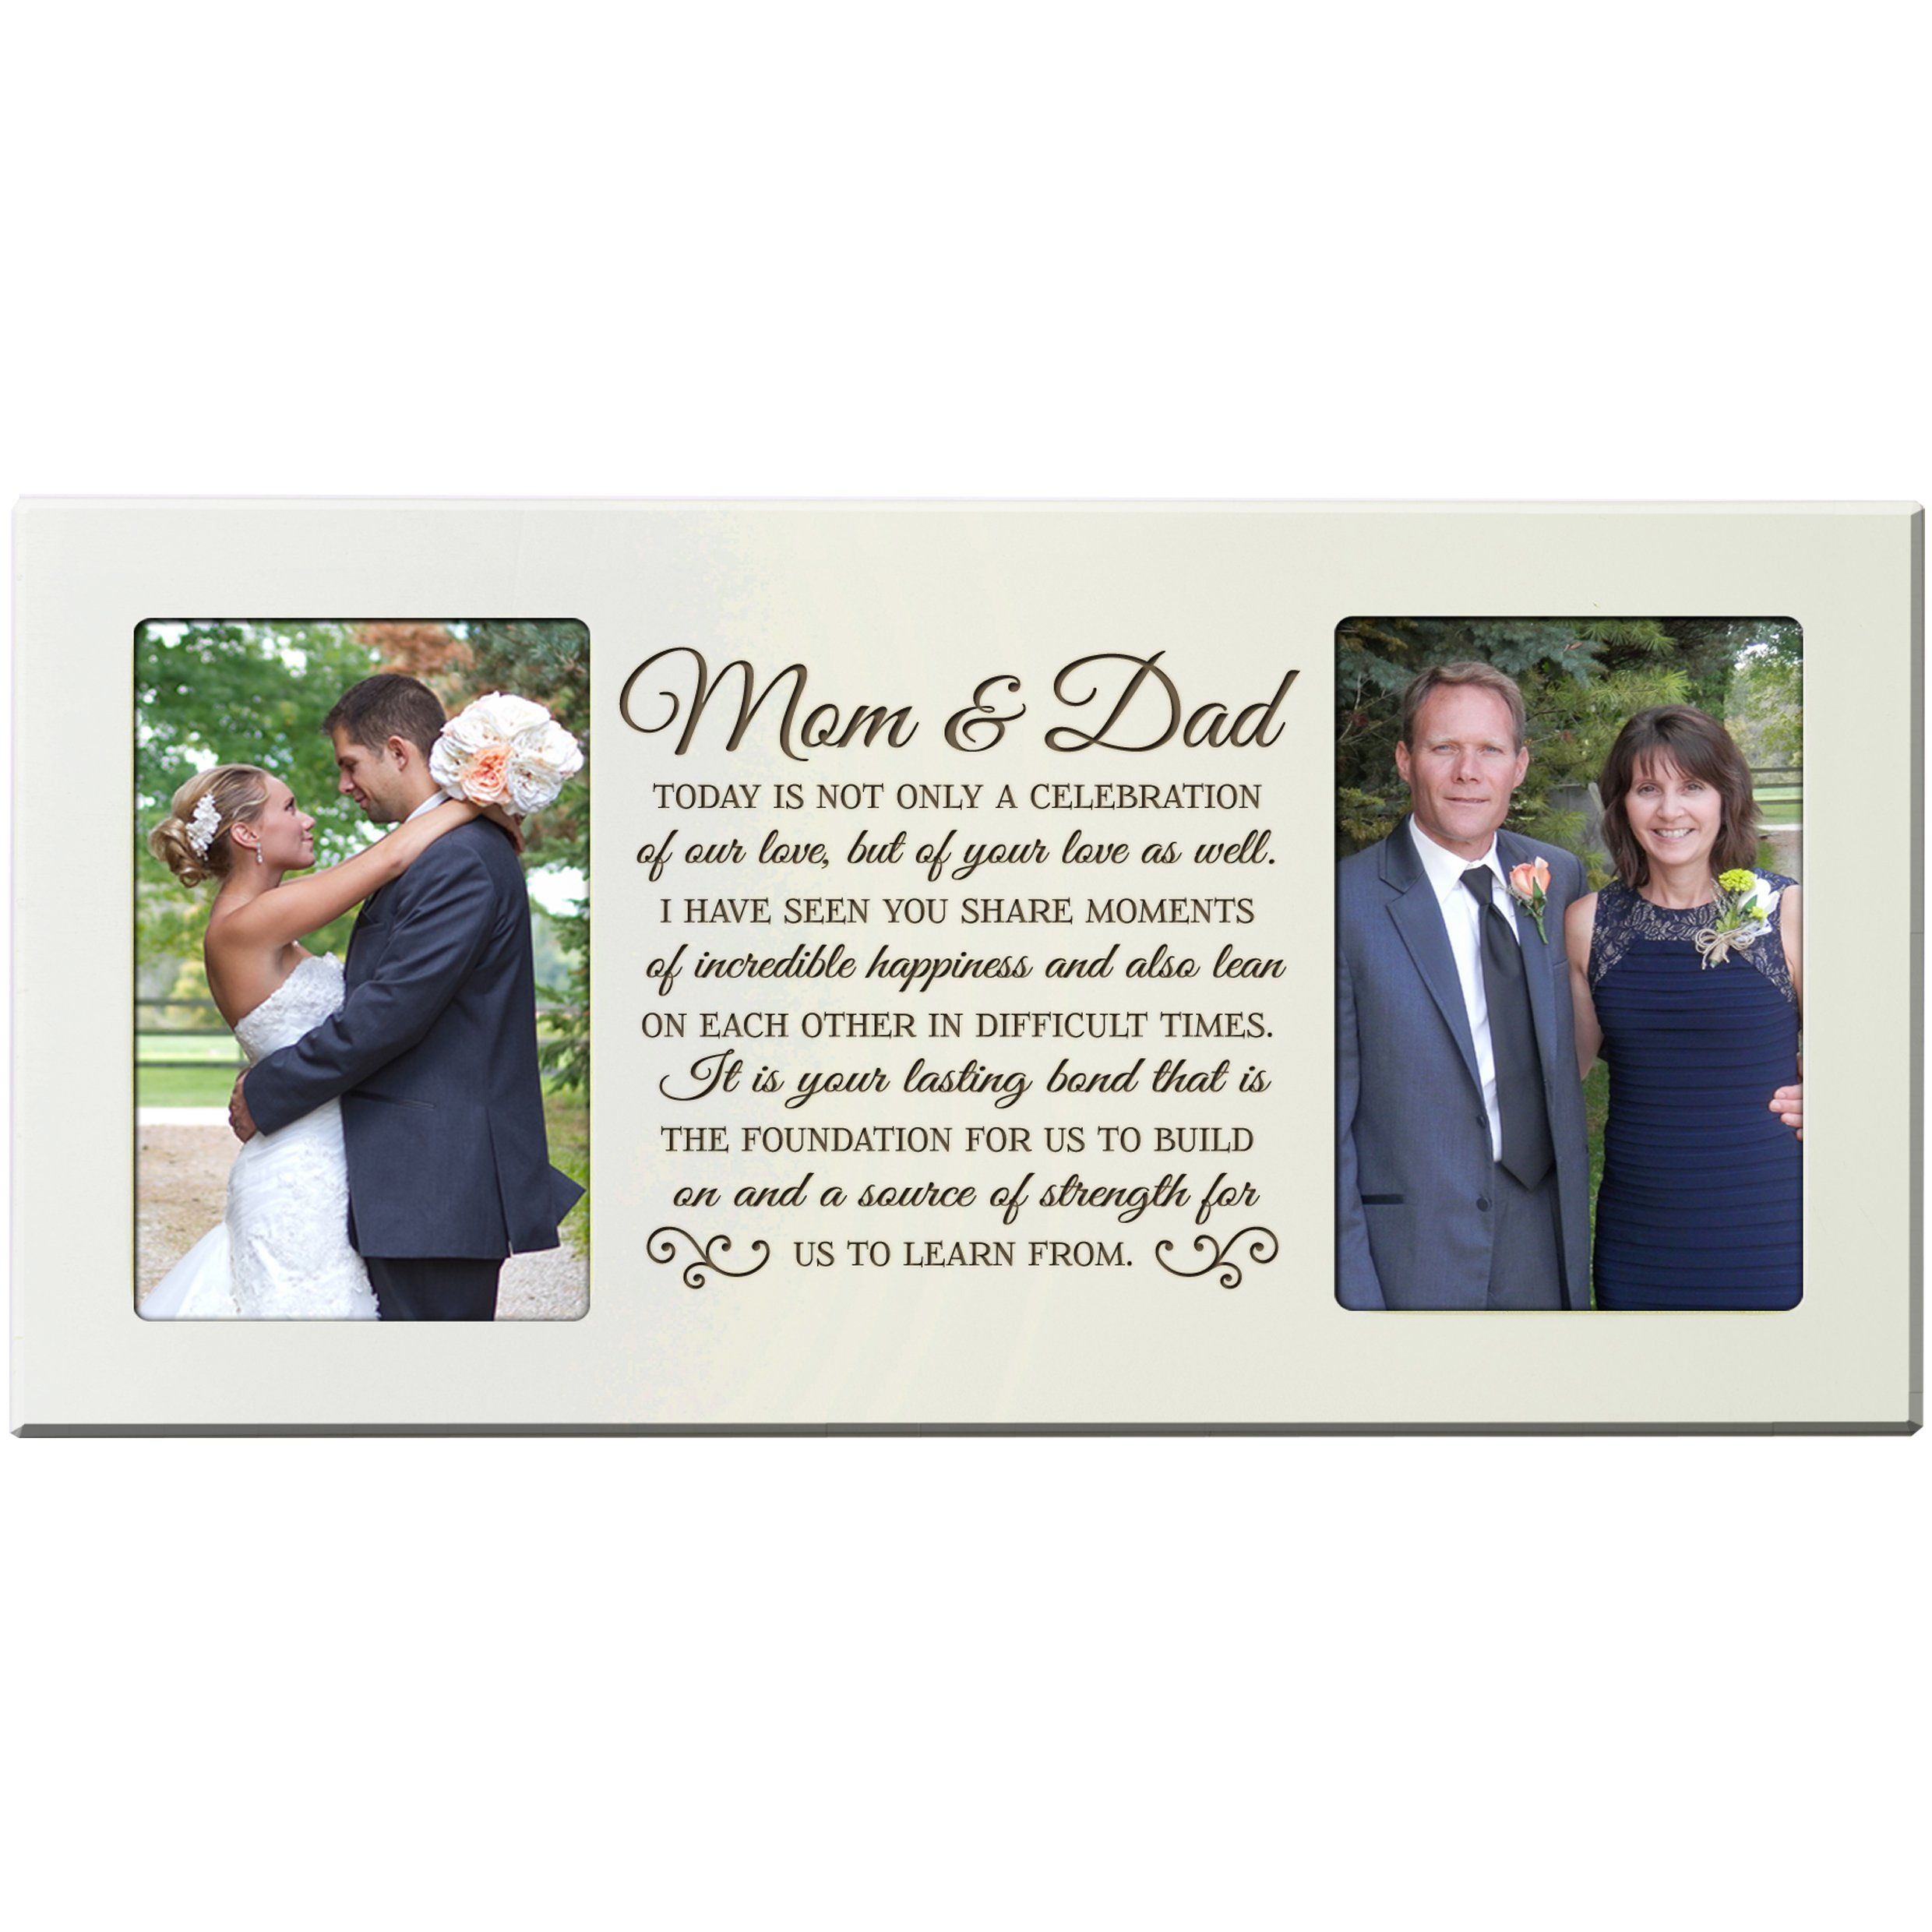 Amazoncom parent wedding gift wedding photo frame for Parent gifts for wedding